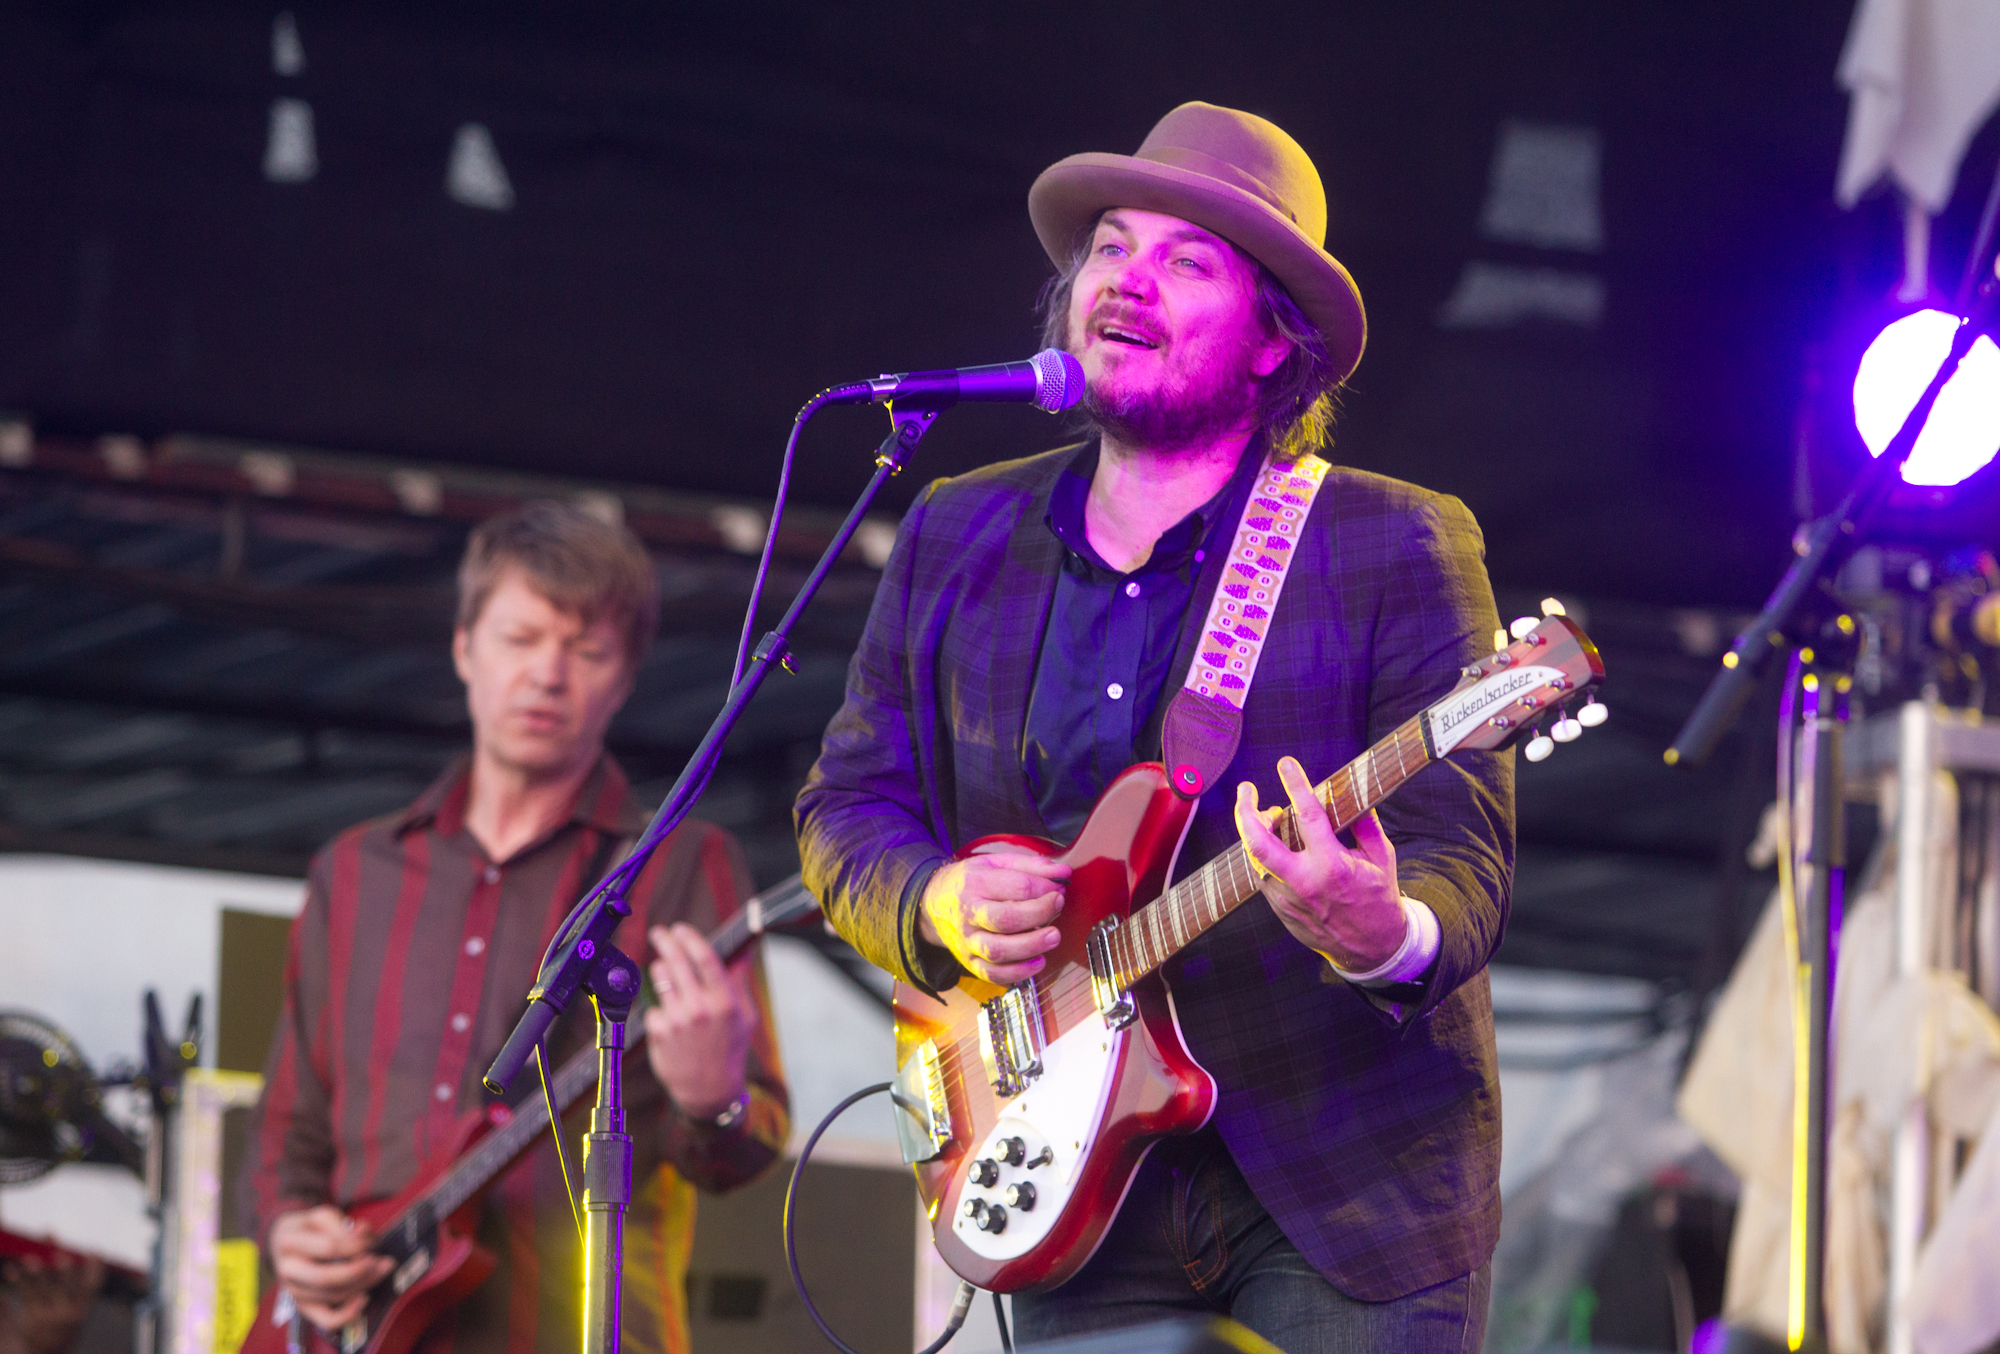 Jeff Tweedy (right) in a heavenly gaze.